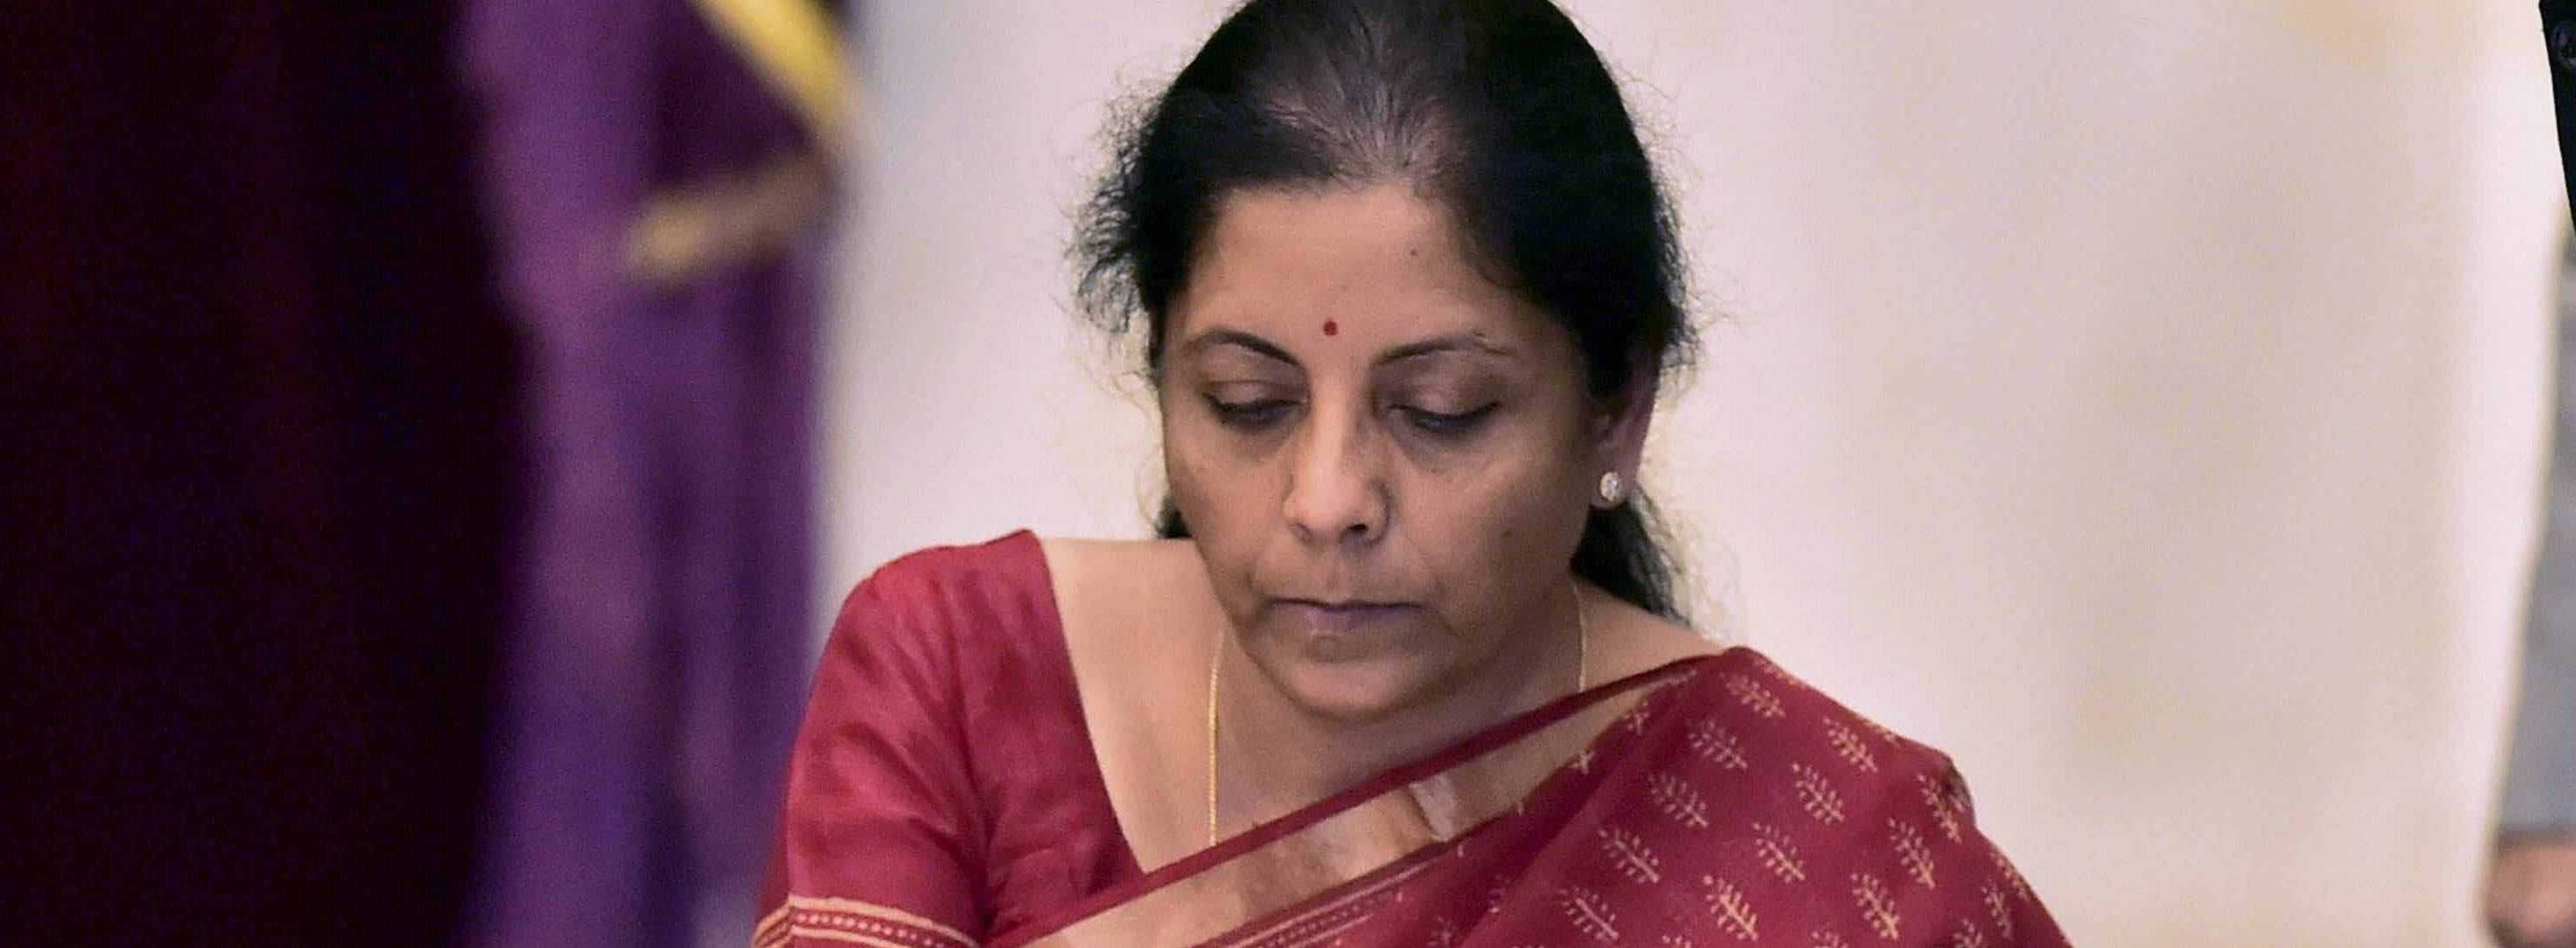 As Defence Minister, Nirmala Sitharaman Has Herculean Tasks Ahead